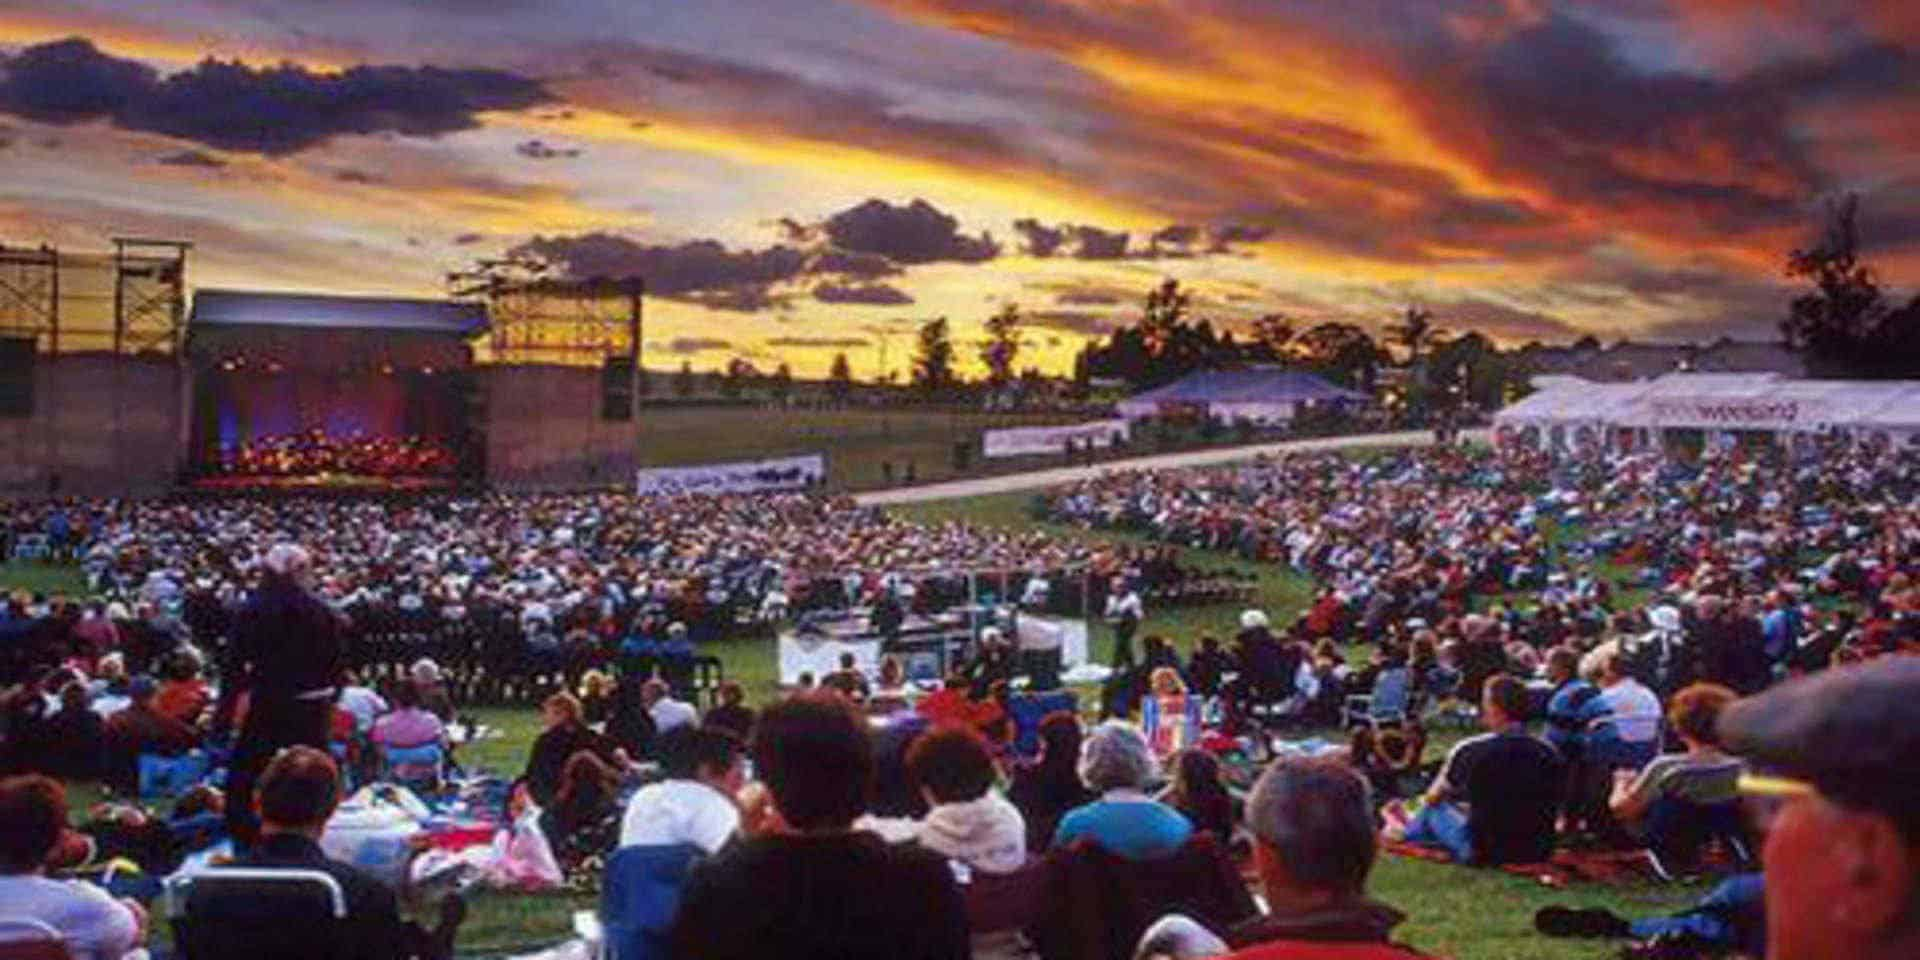 Spectacular sunset during outdoor concert